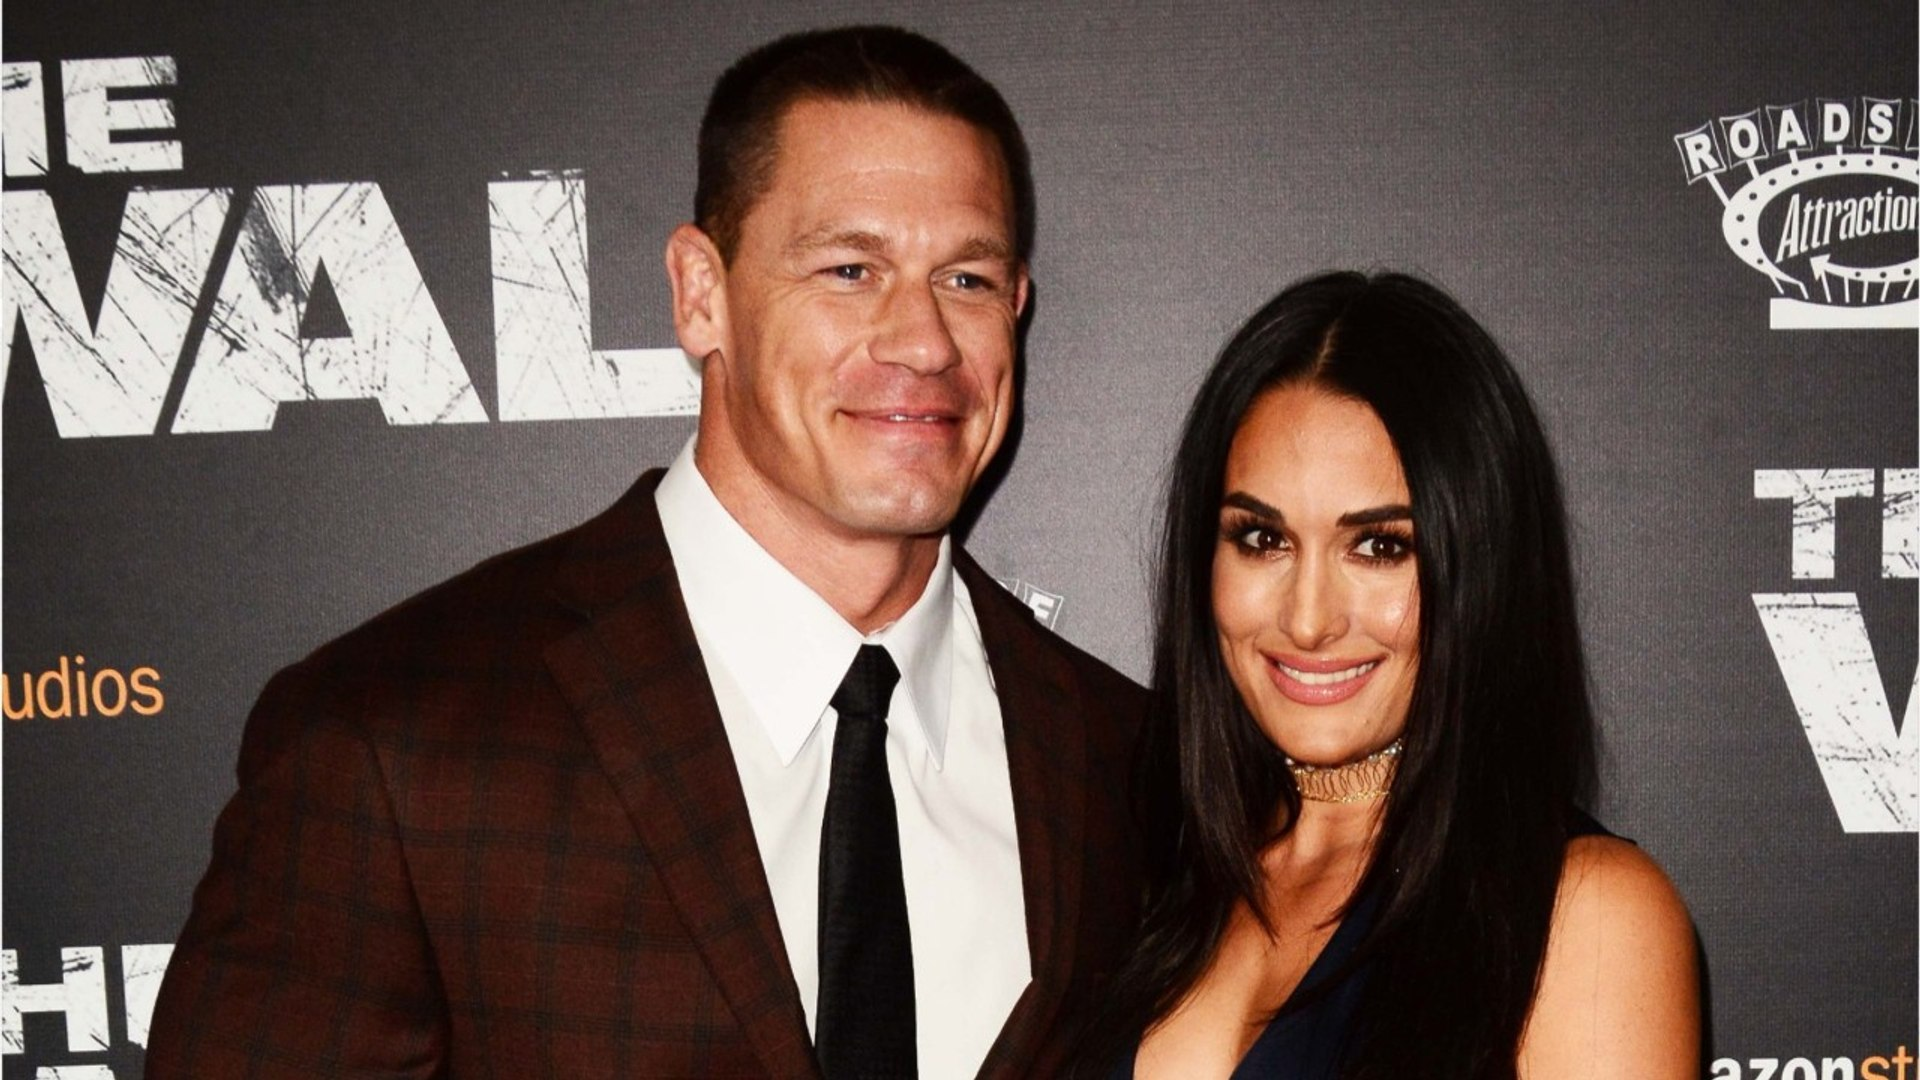 EXCLUSIVE: Nikki Bella Gets Emotional as Fiance John Cena Gushes Over Wedding Plans